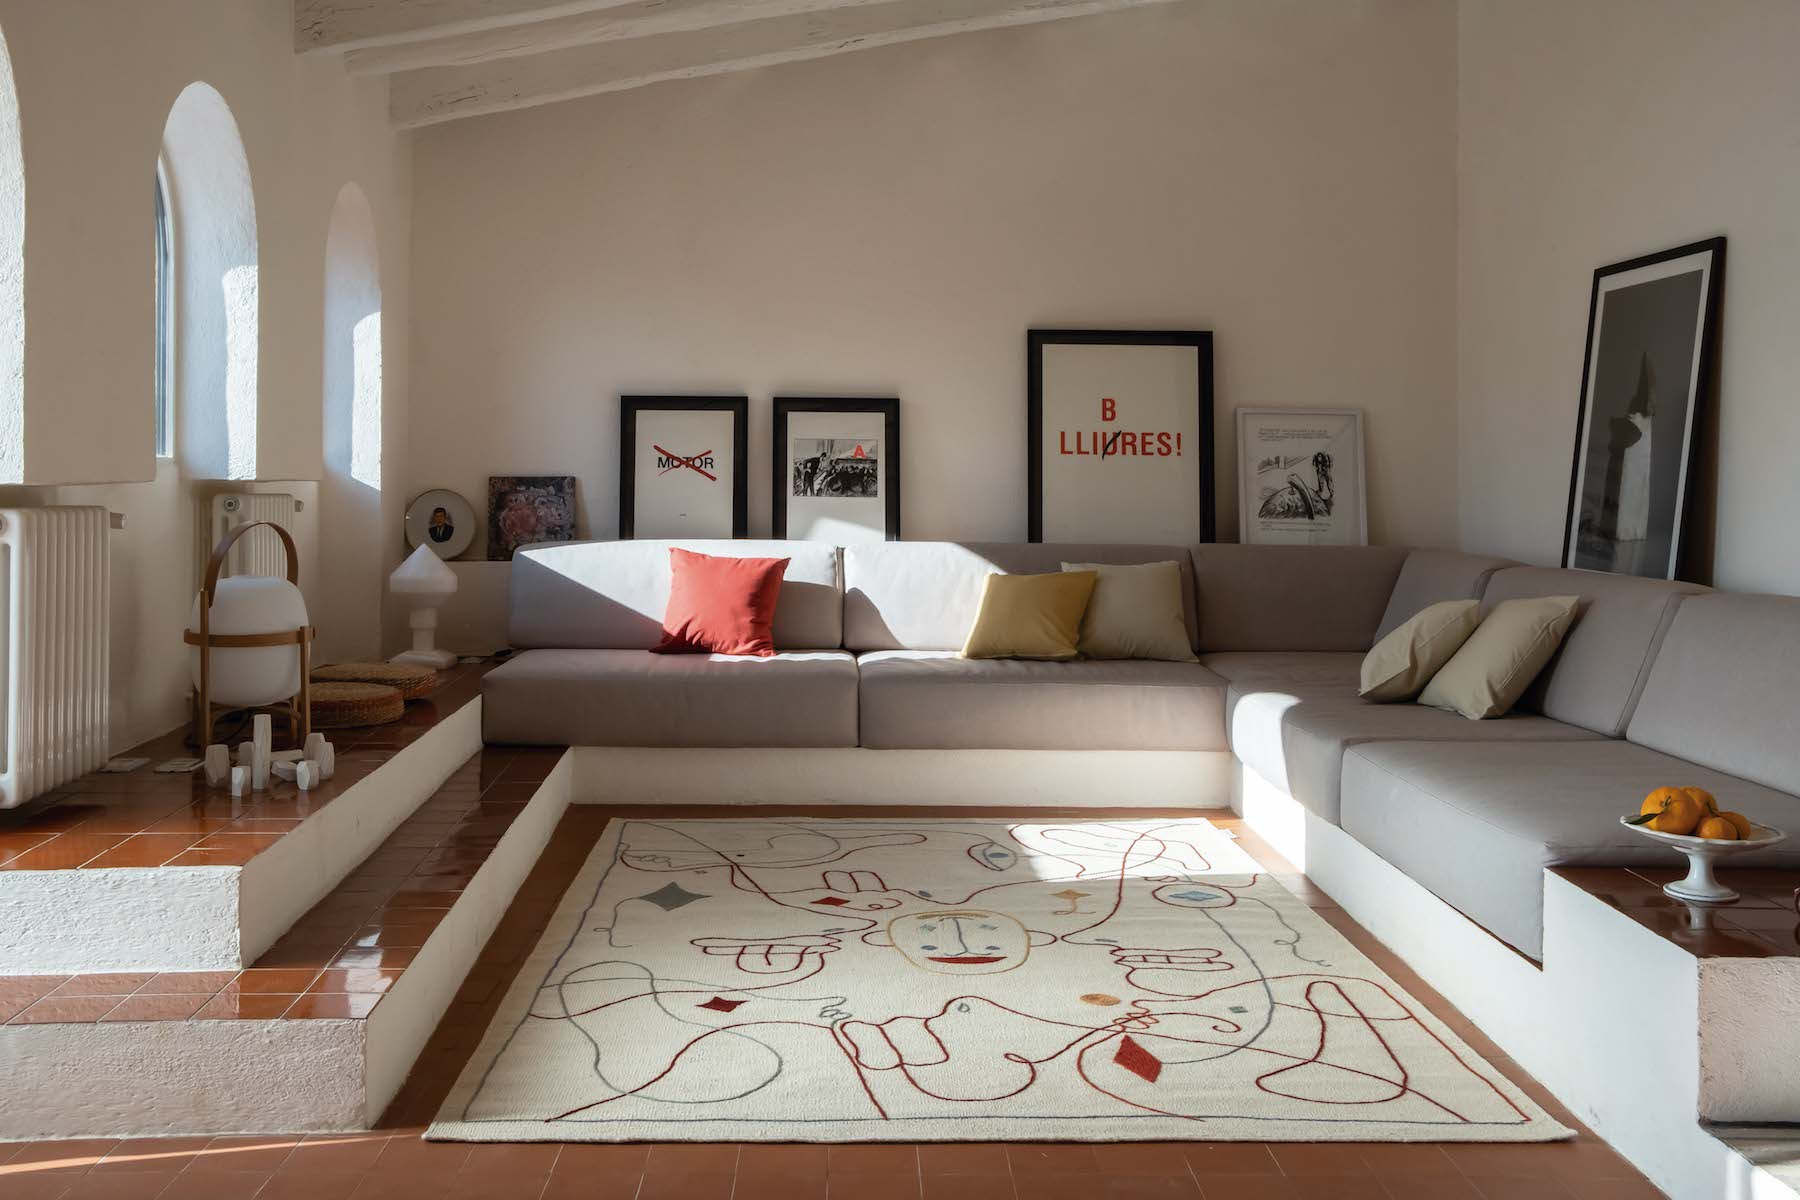 This whimsical rug is like a visual puzzle on your floor